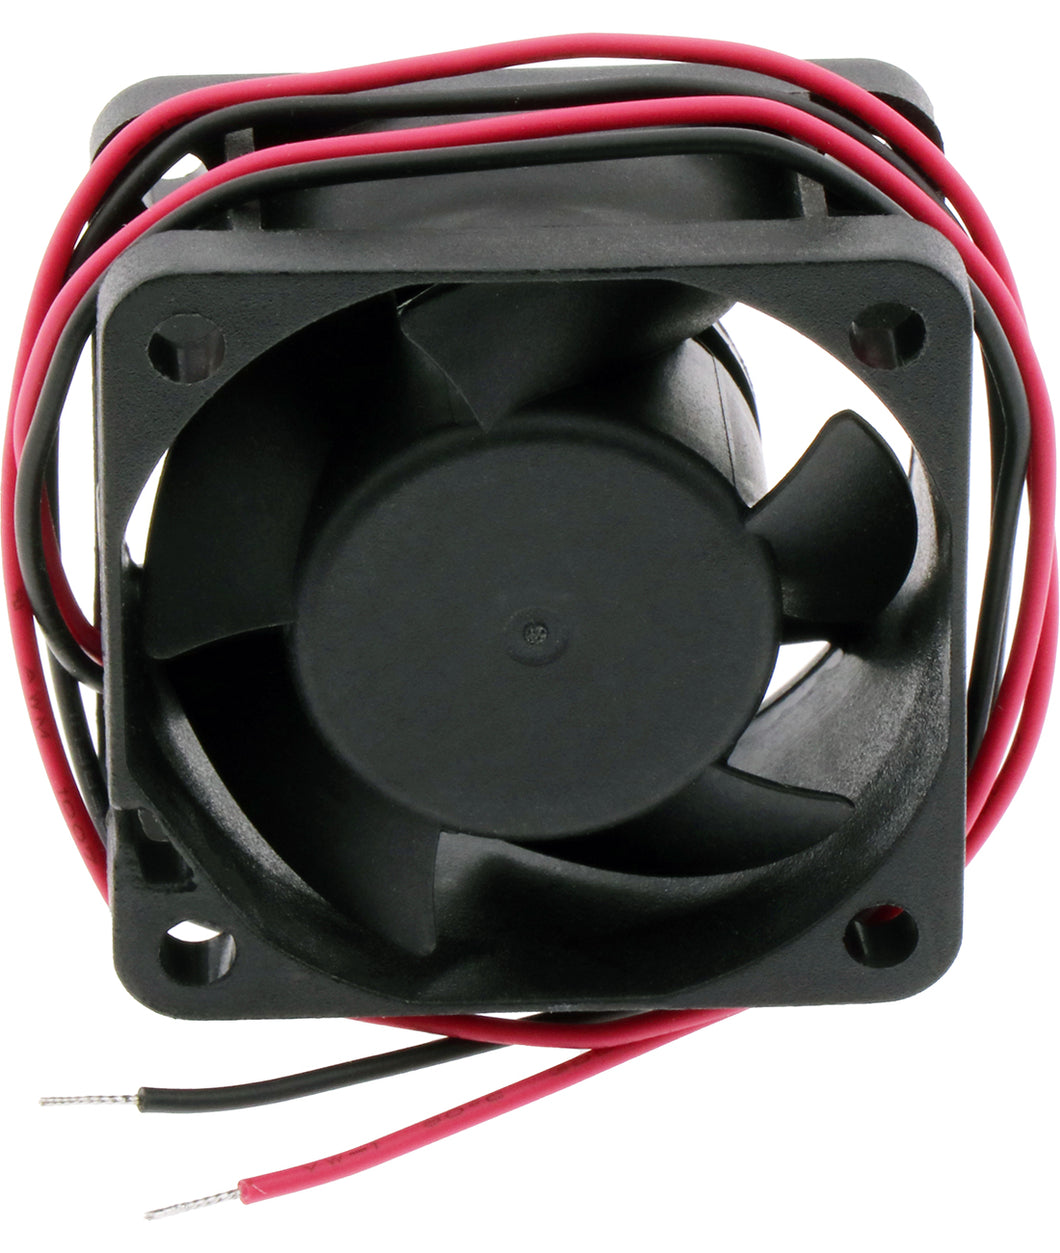 #1062 Fan 24V DC 40mm 20mm Thick